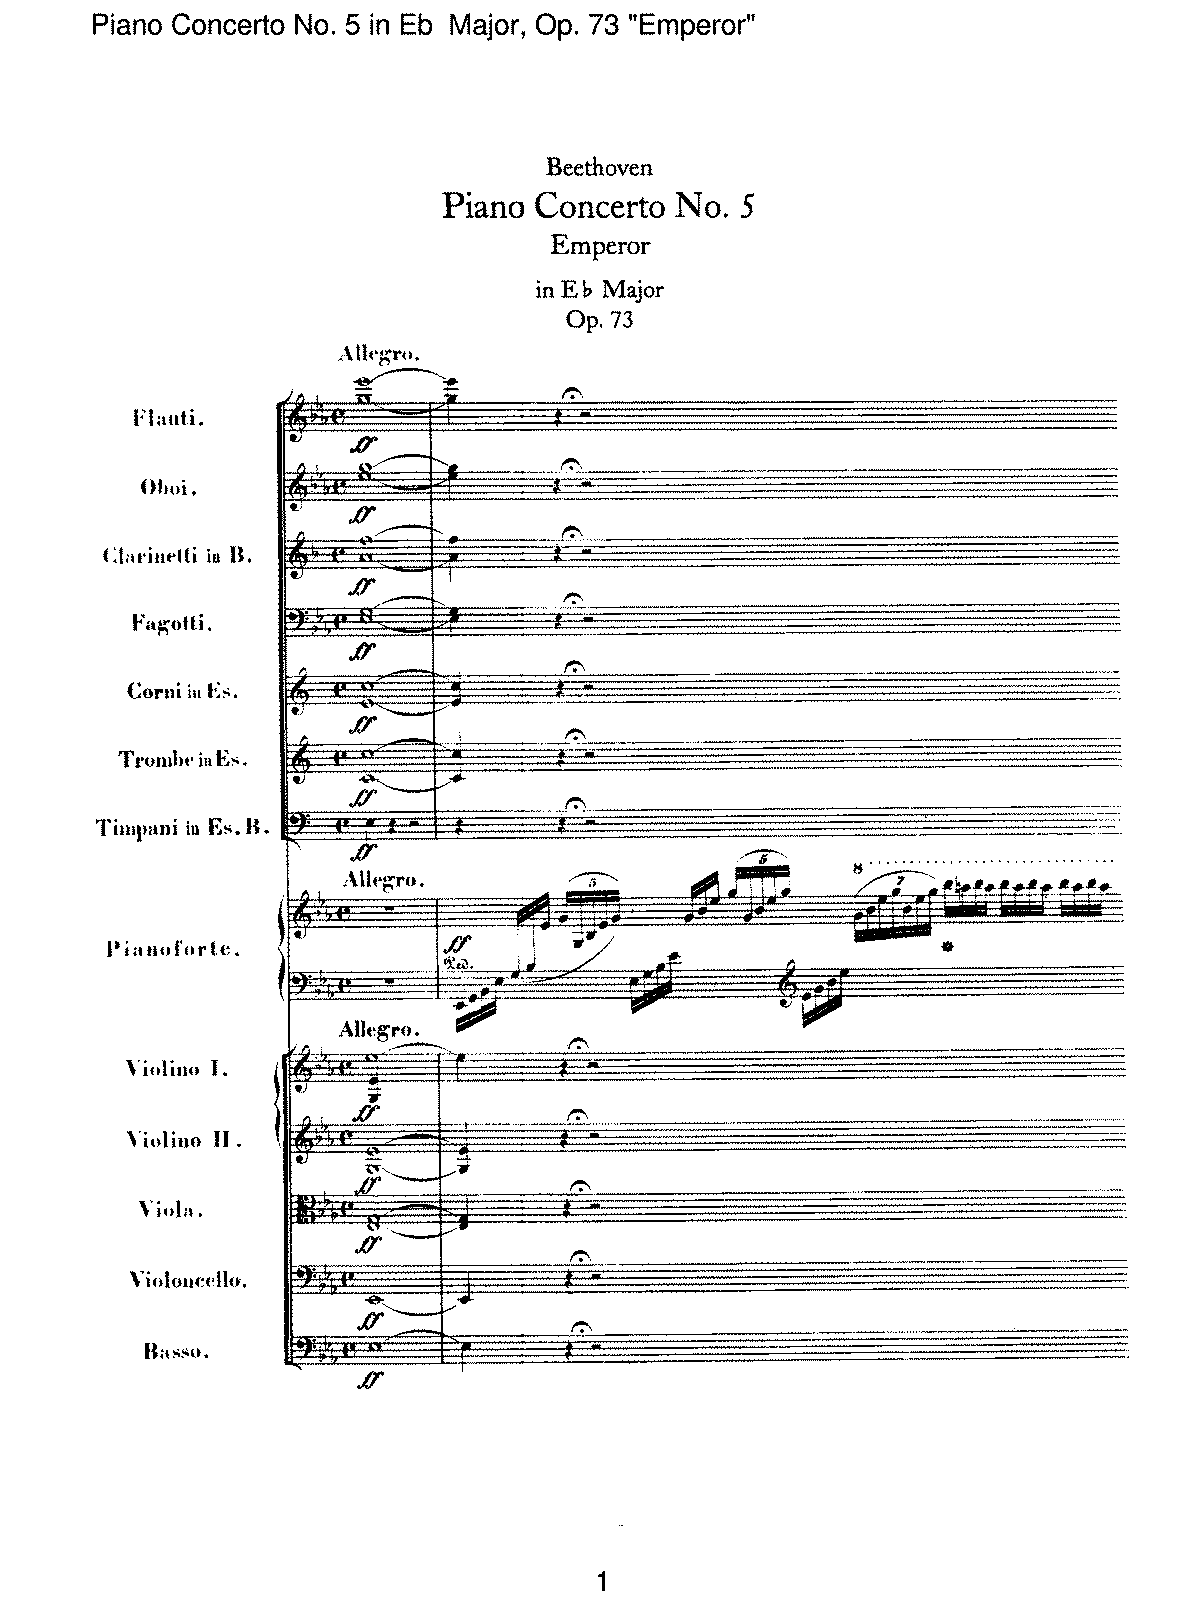 Beethoven Piano concerto No.5 in Eb Major,1stMvt.pdf